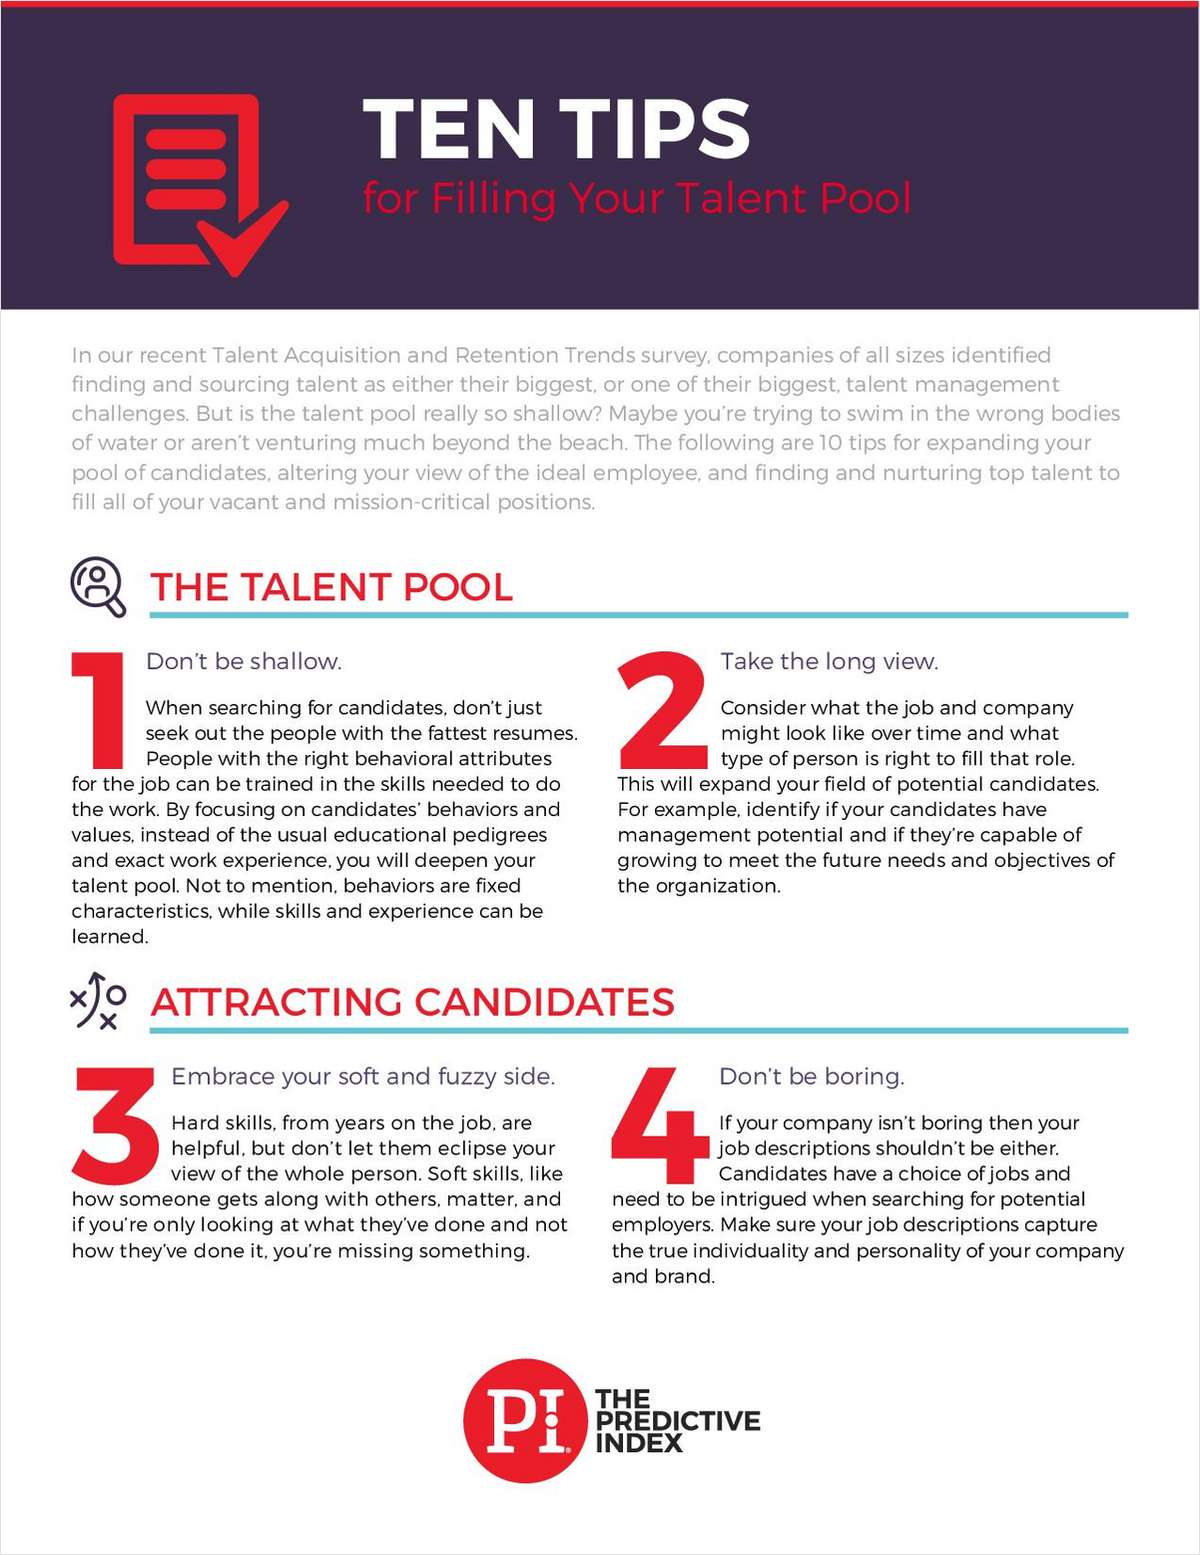 Ten Tips for Filling Your Talent Pool